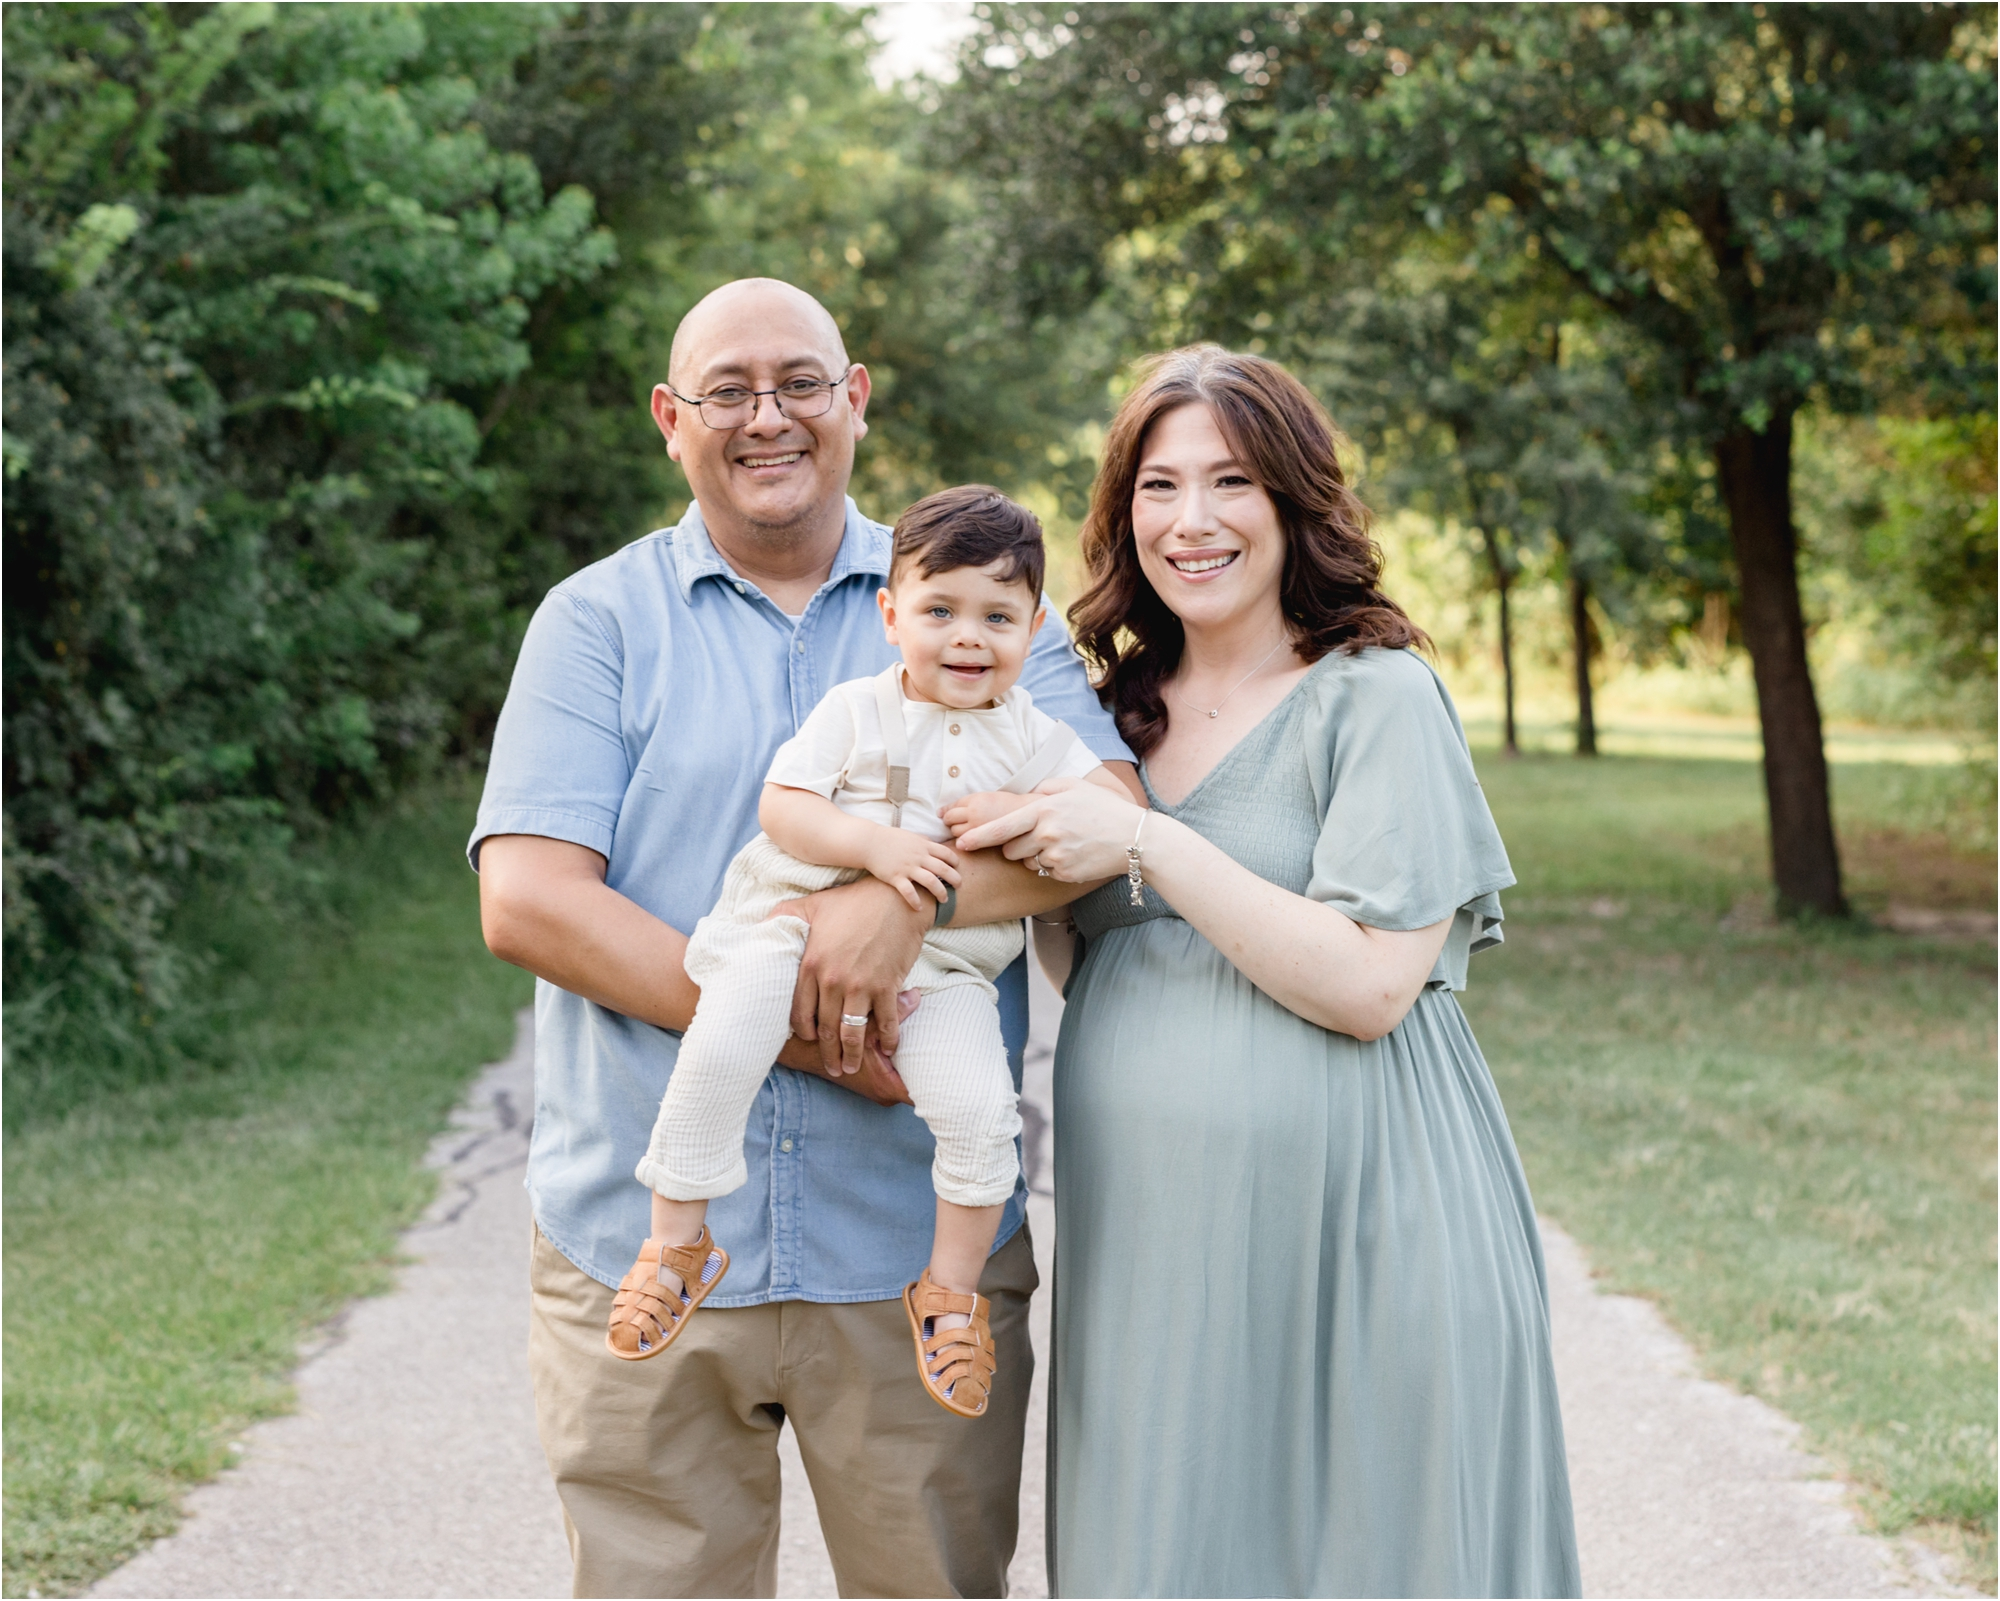 Family of three smiling at camera during maternity session in Houston park. Photo by Lifetime of Clicks Photography.